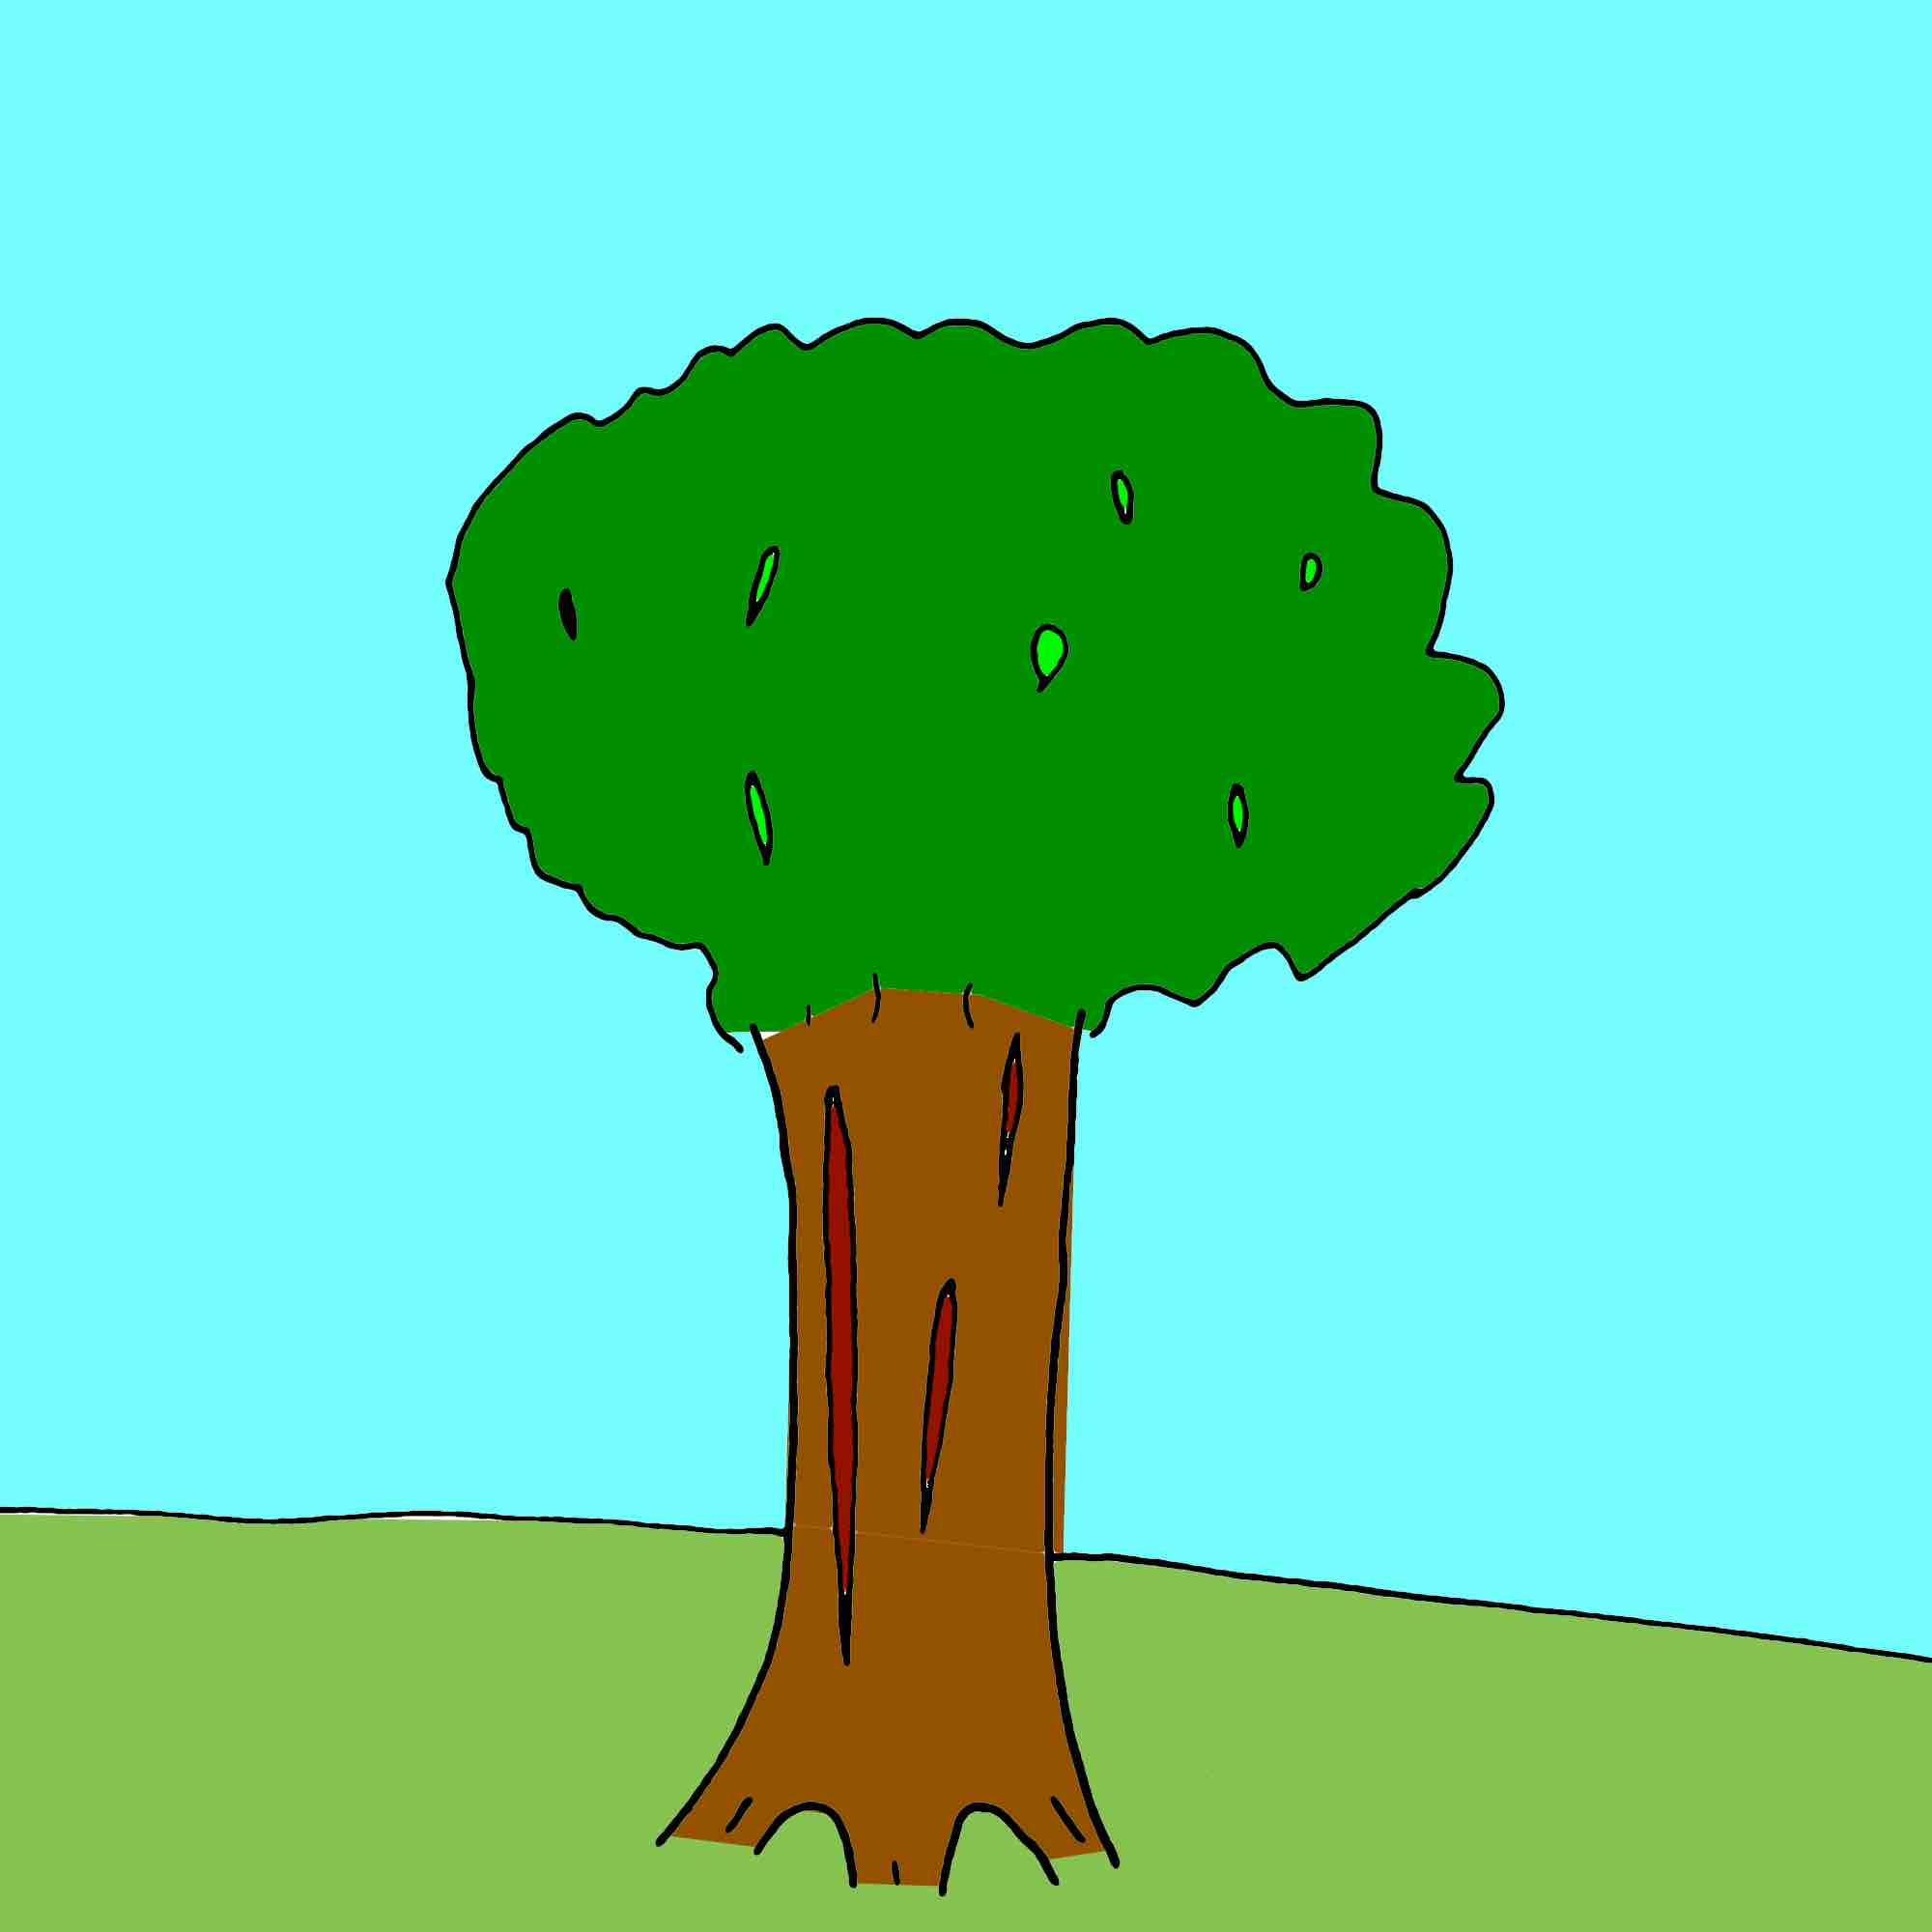 a cartoon of a tree that was planted 20 years ago